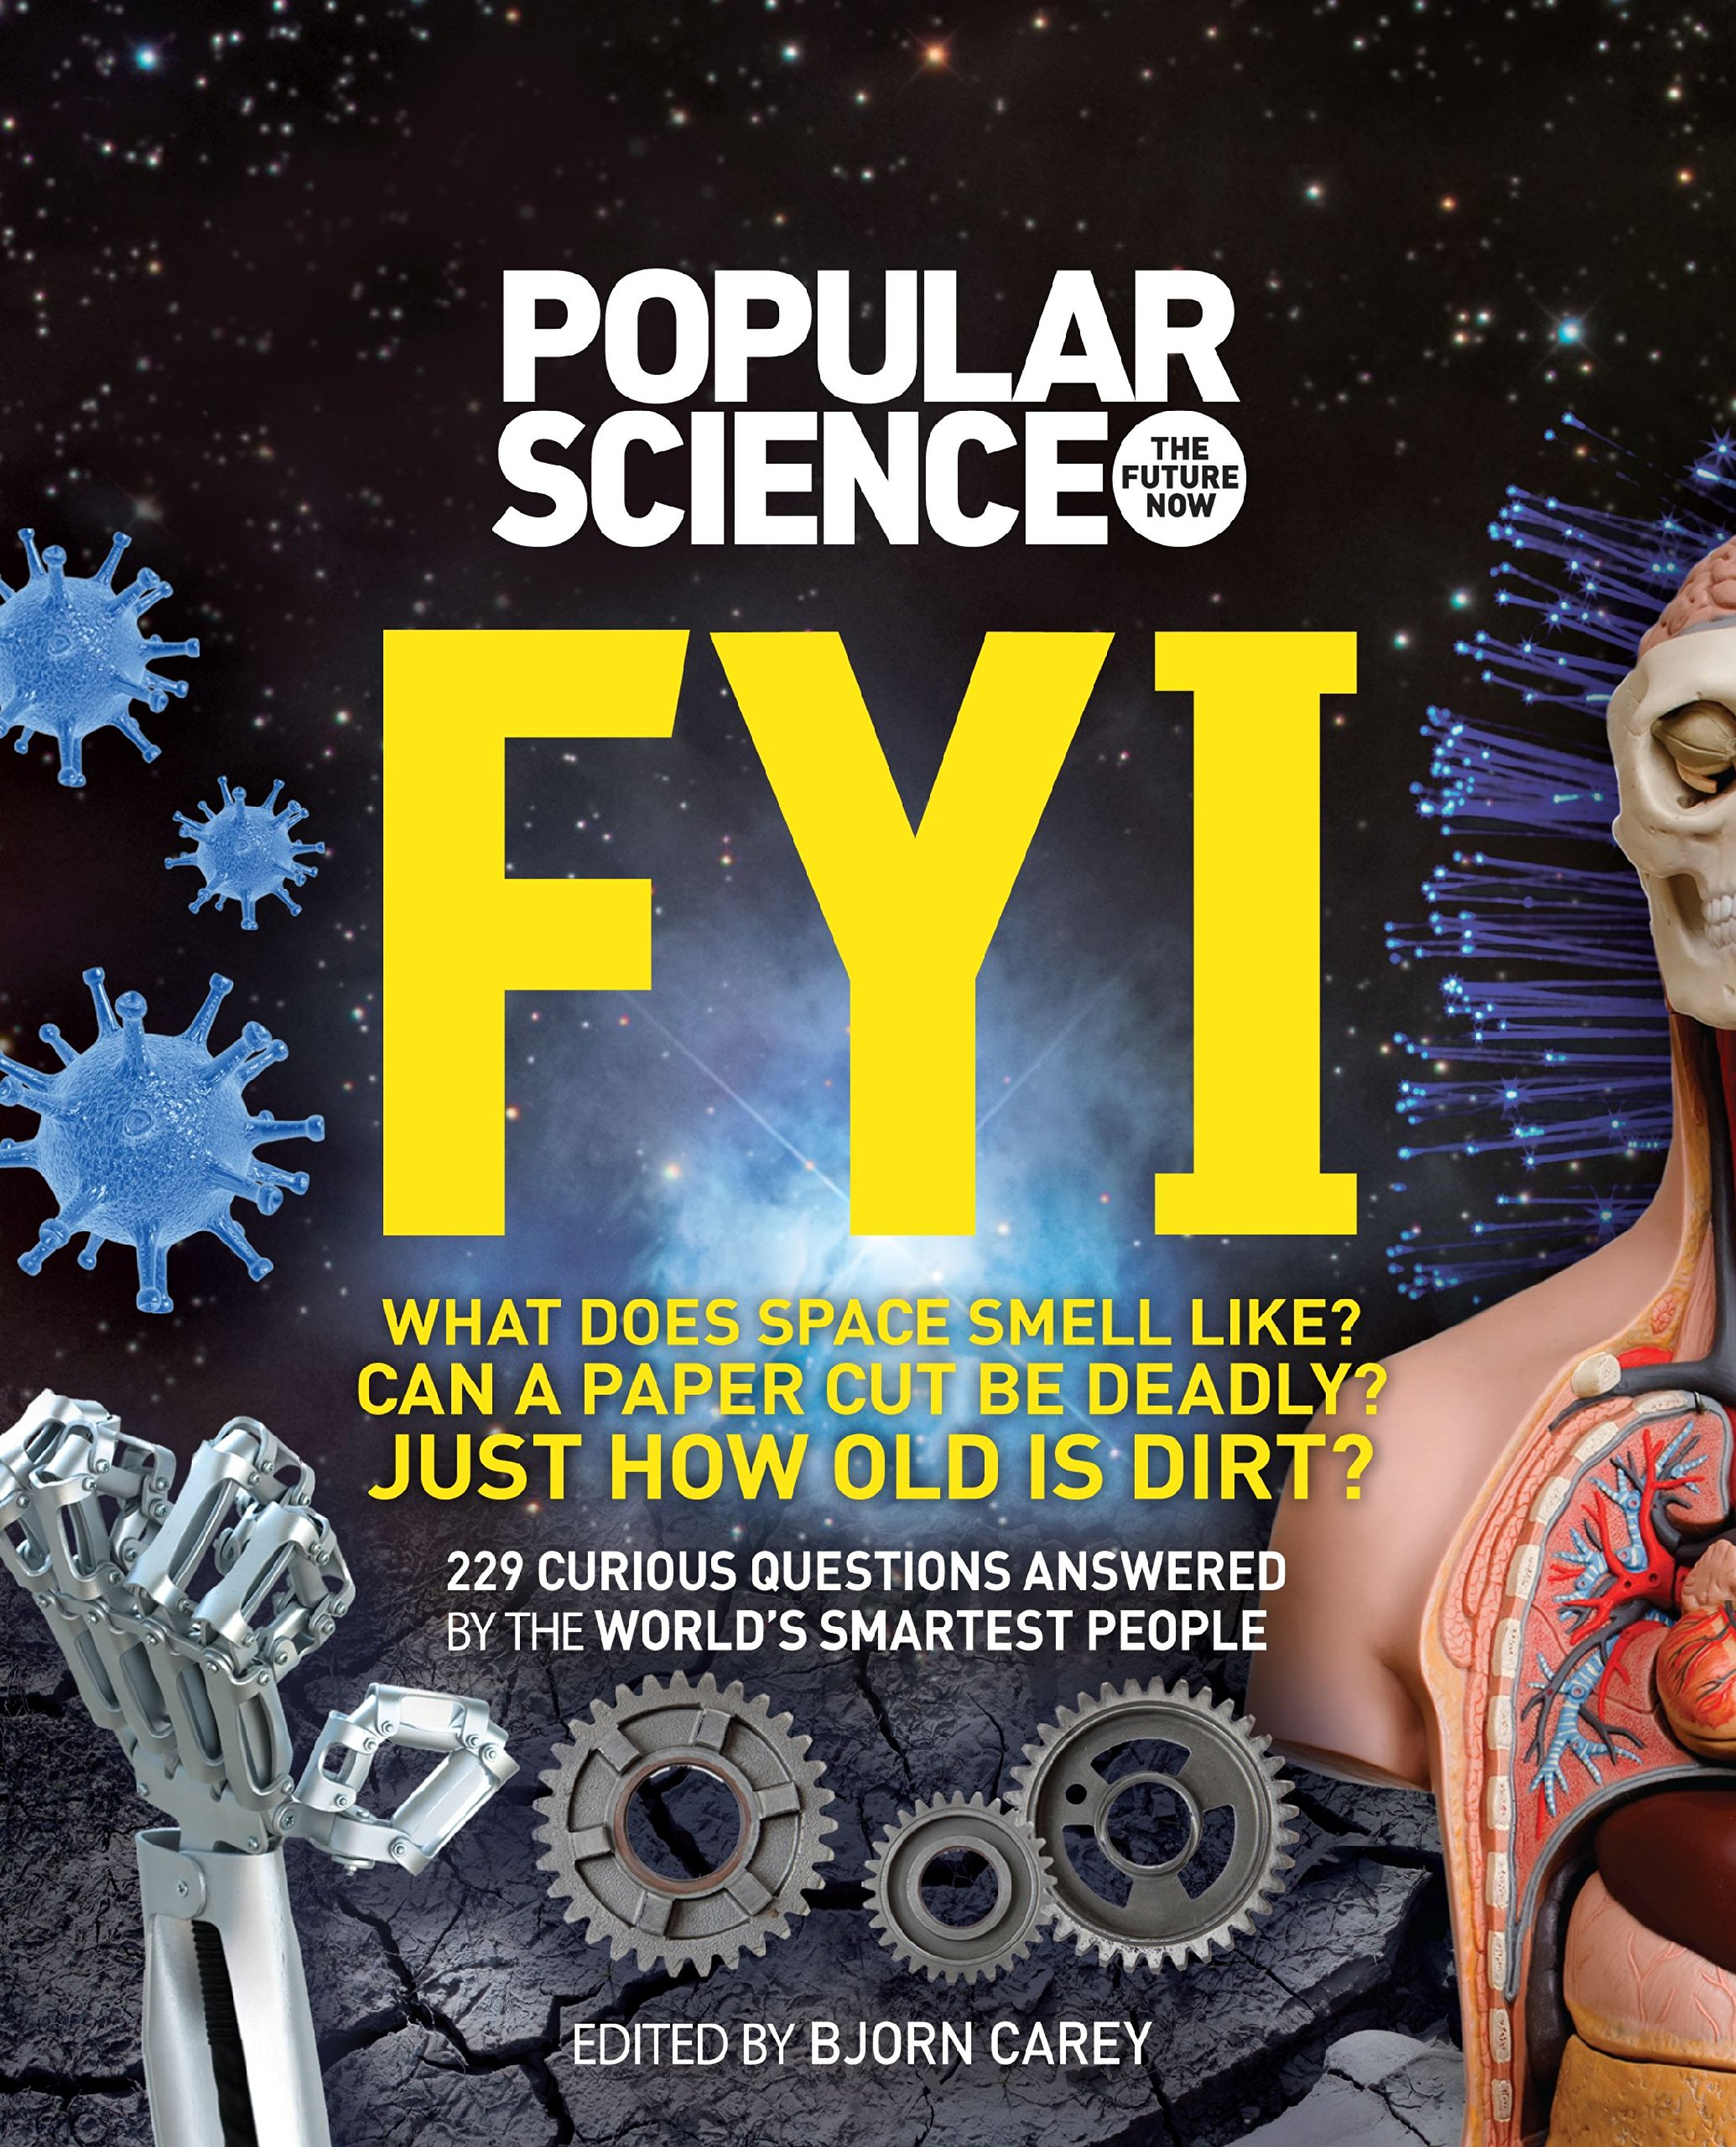 fyi-popular-science-229-curious-questions-answered-by-the-world-s-smartest-people